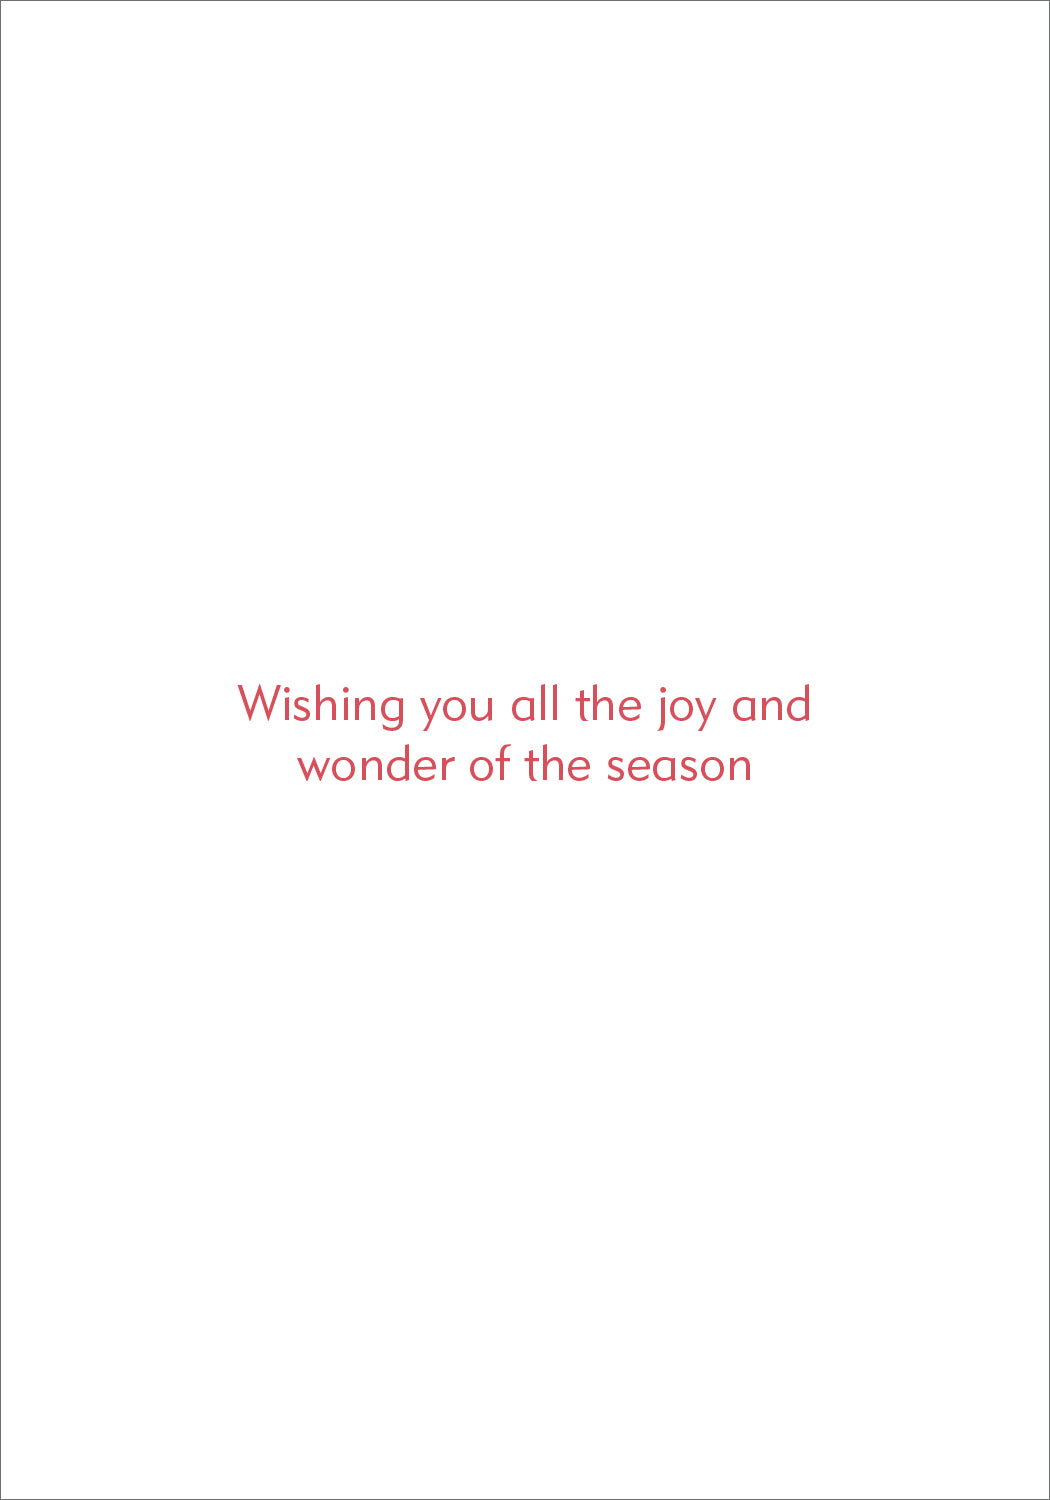 Boxed Christmas Cards - Joy To The World